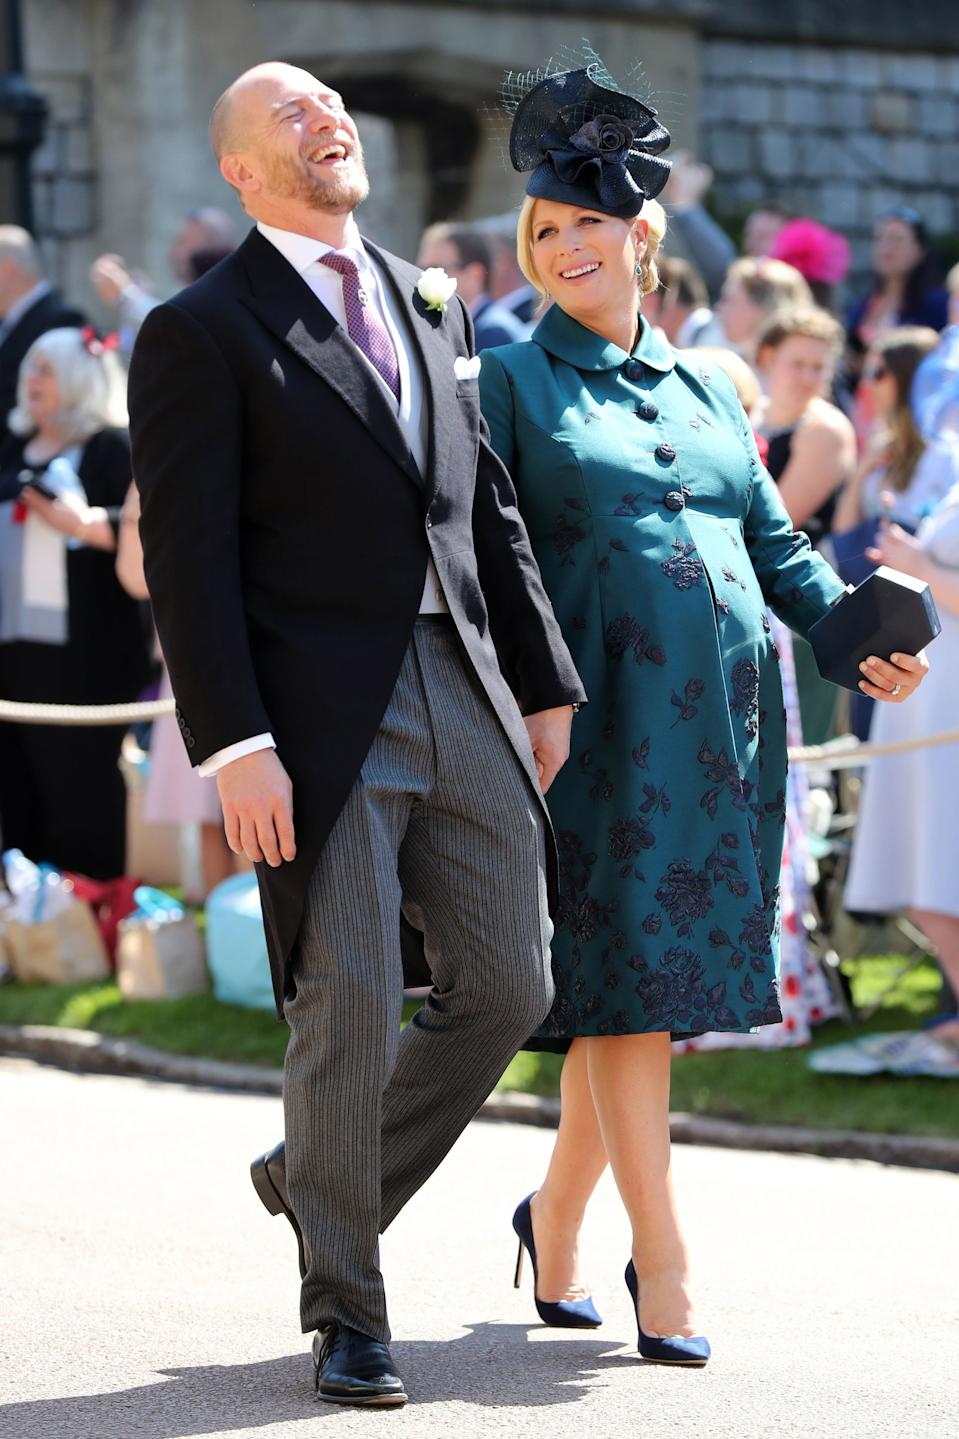 MIke Tindall and Zara Tindall arrives at St George's Chapel at Windsor Castle for the wedding of Meghan Markle and Prince Harry at St George's Chapel on May 19th 2018